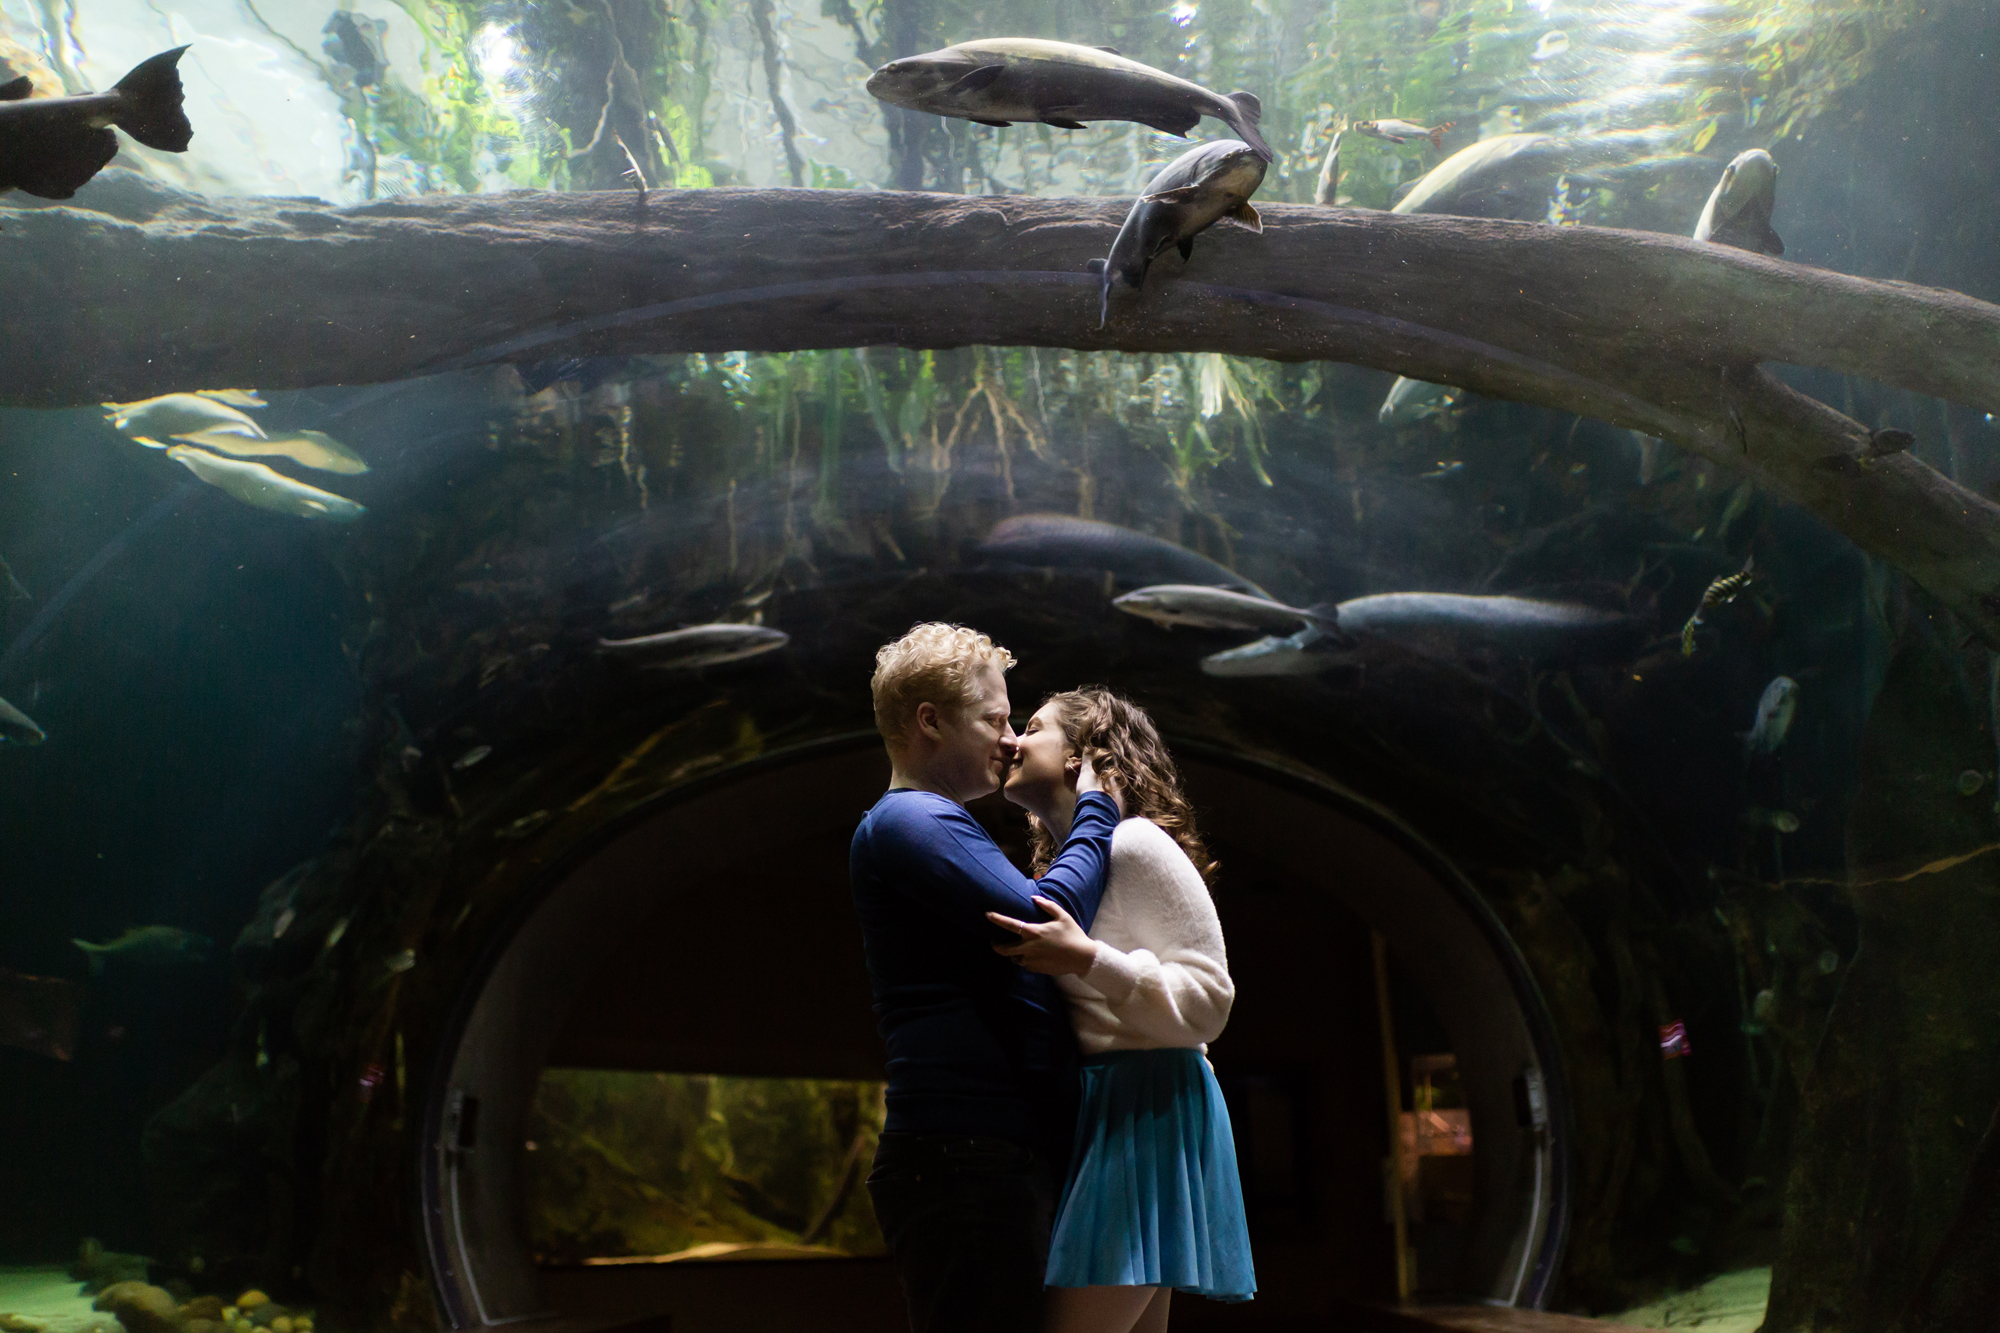 california-academy-of-sciences-engagement-photography-lilouette-19.jpg